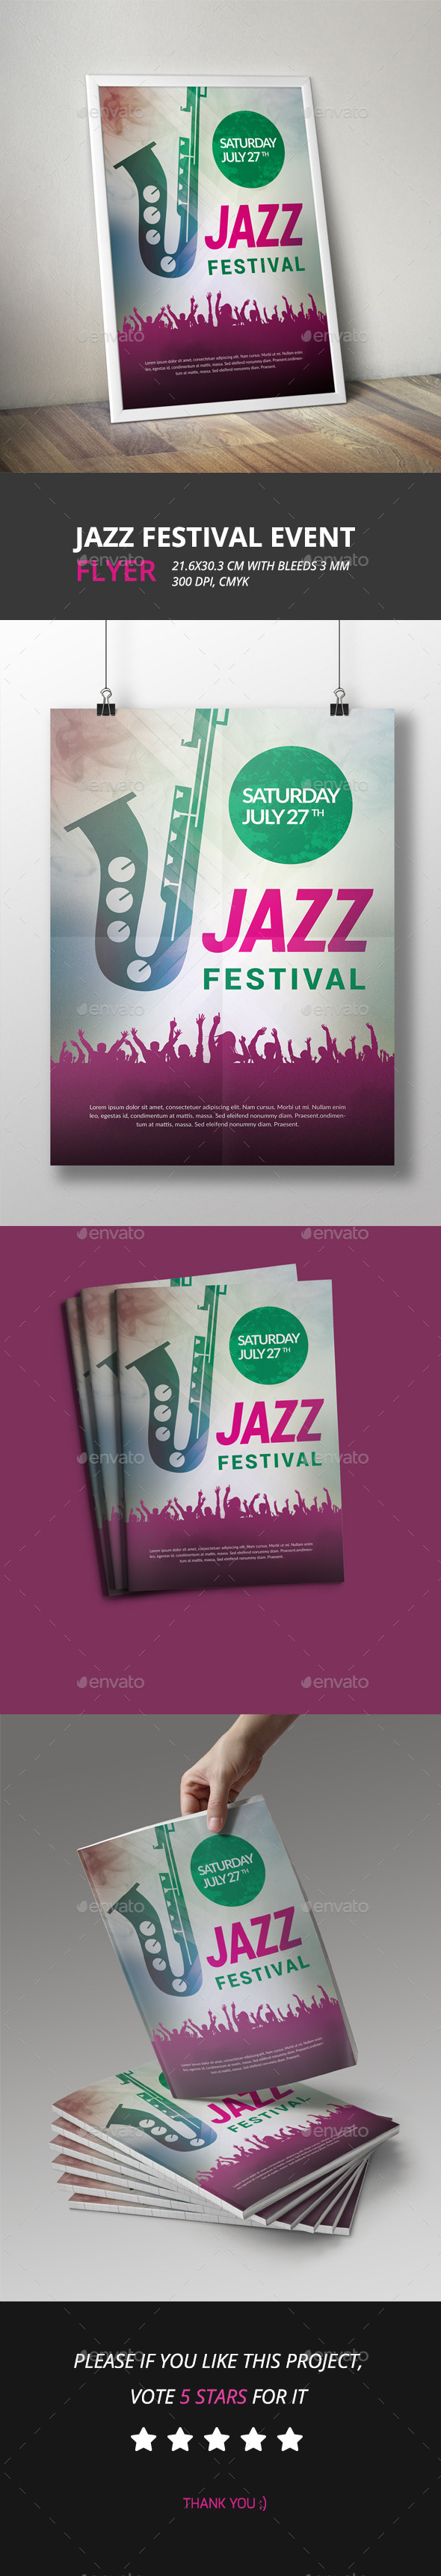 Jazz Festival Event Flyer - Clubs & Parties Events